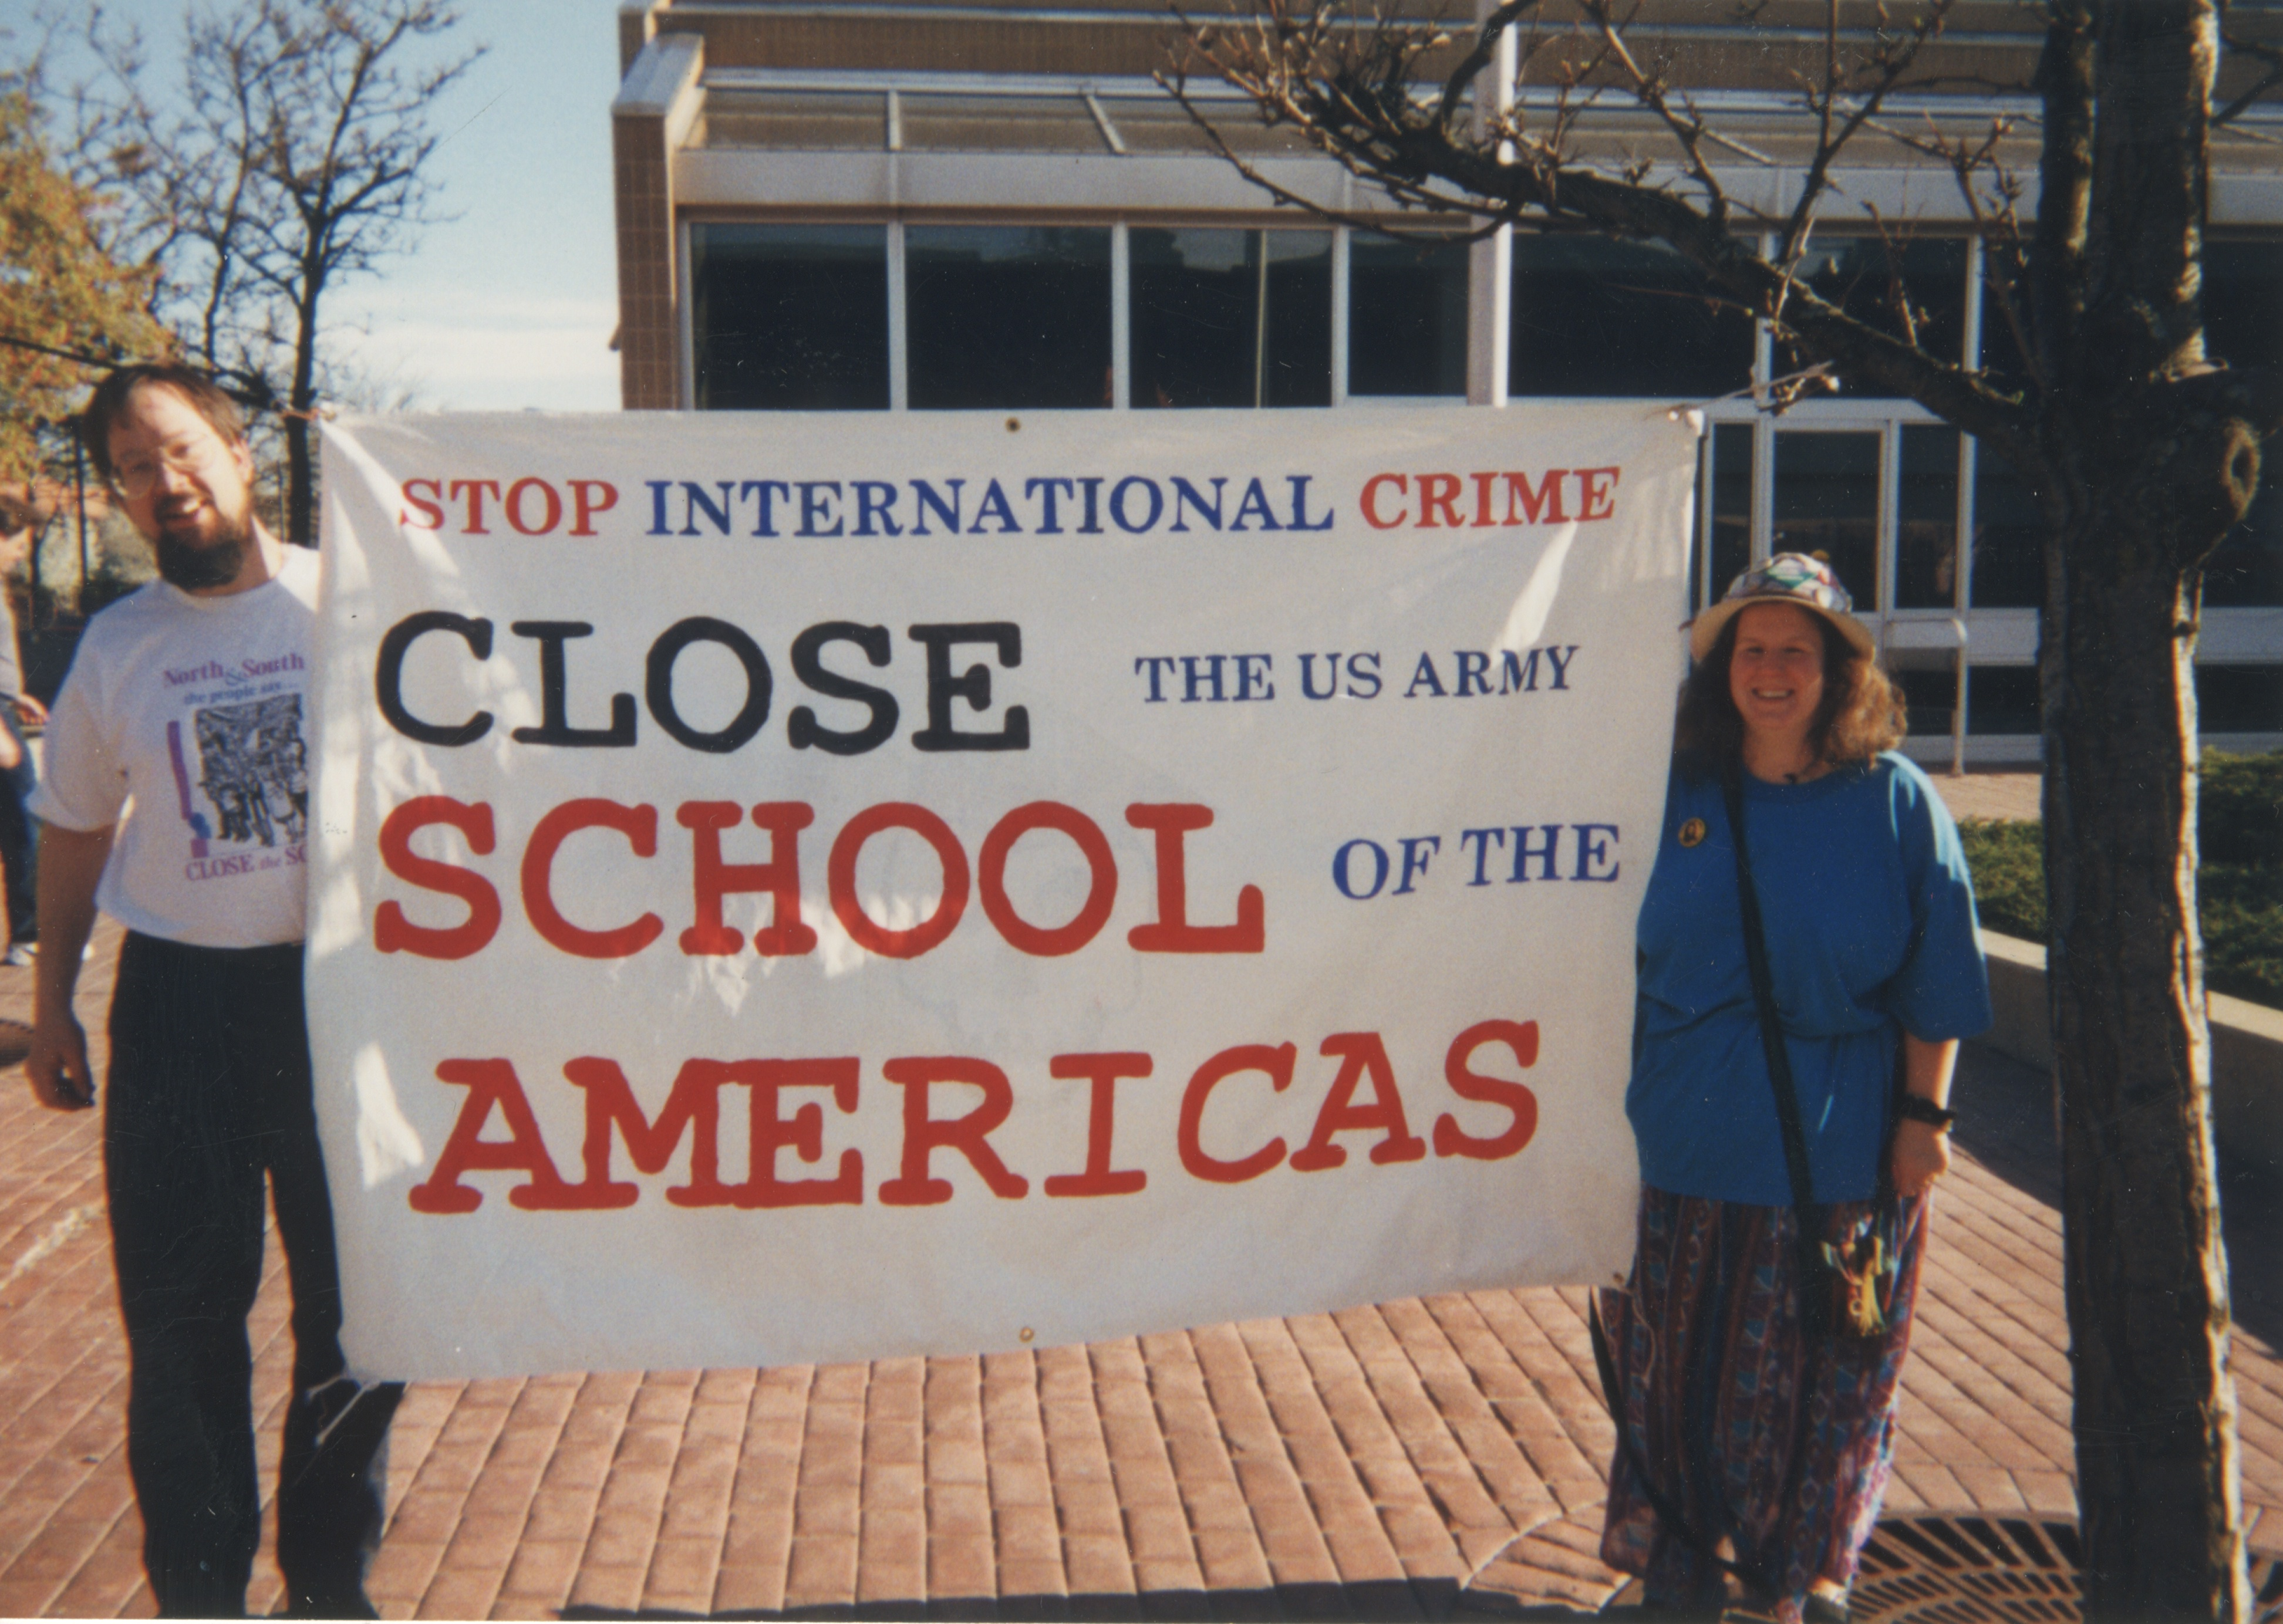 Interfaith Council for Peace and Justice: Protest Against the School of the Americas, 1999 image